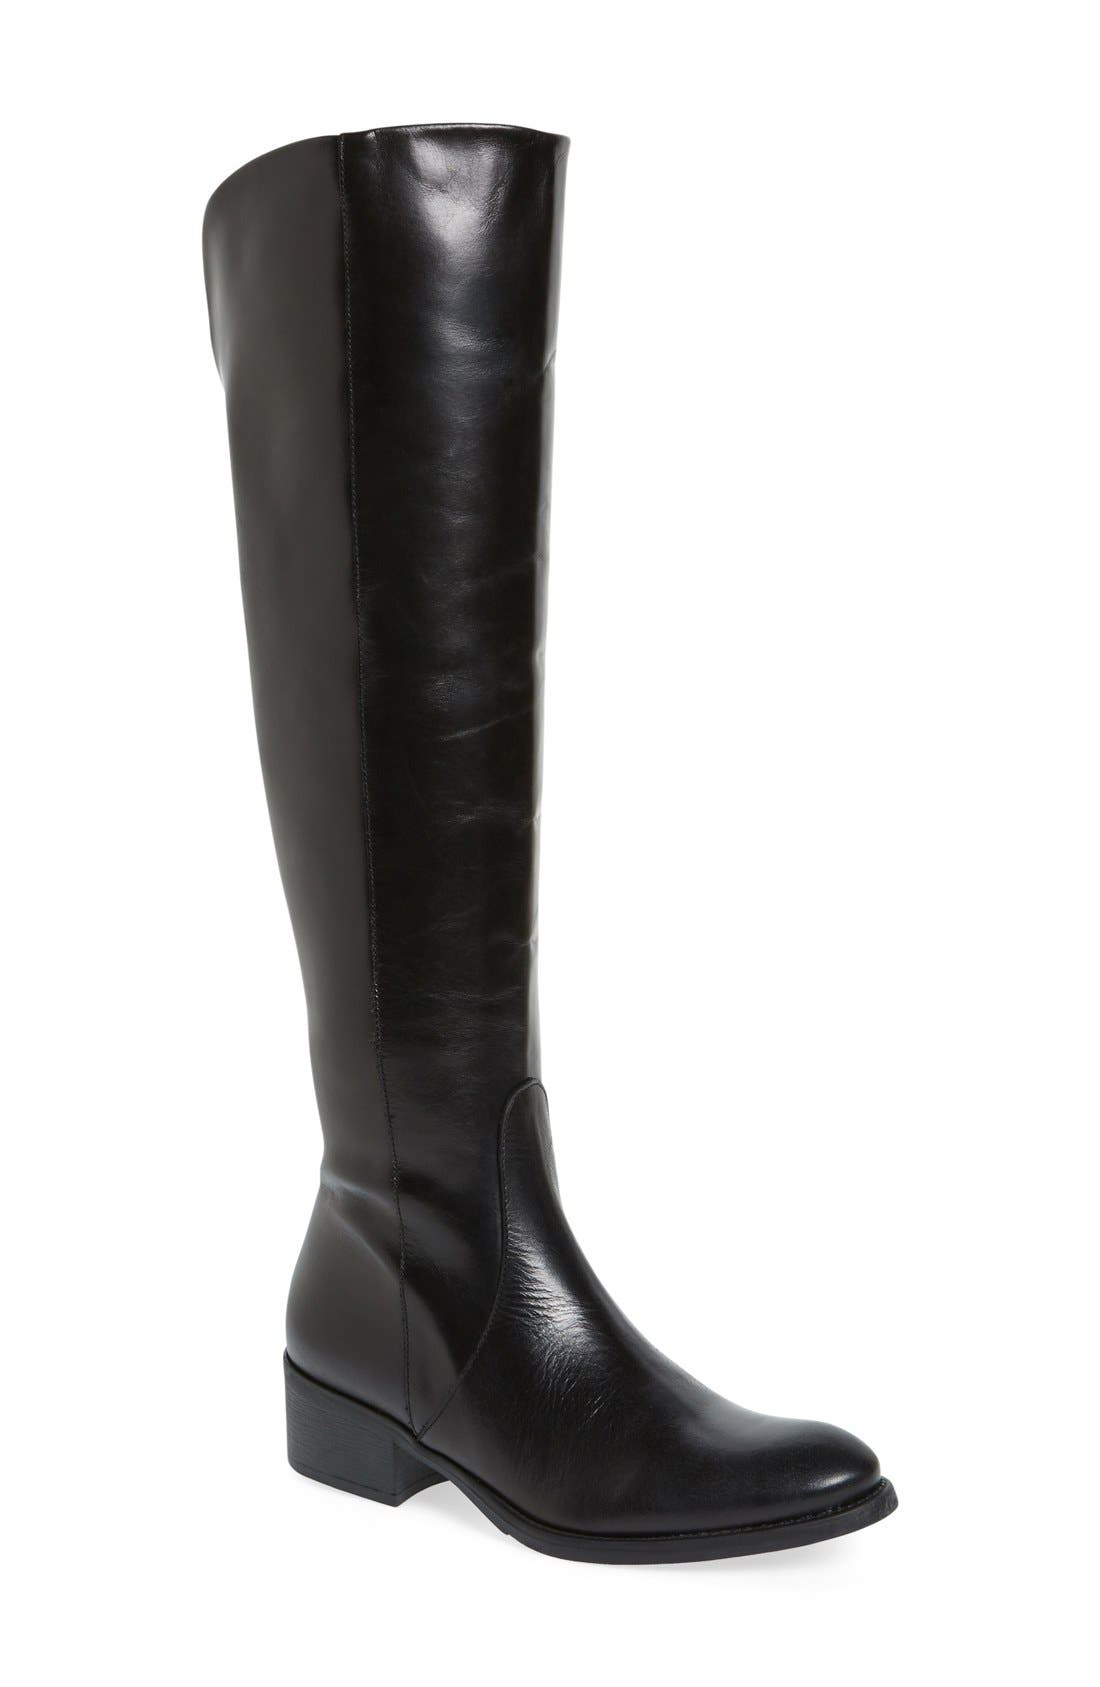 A classic almond-toe riding boot features a low block heel and a notched collar that provides a more flexible fit. Style Name: Toni Pons \\\'Tallin\\\' Over-The-Knee Riding Boot (Women). Style Number: 5251845. Available in stores.